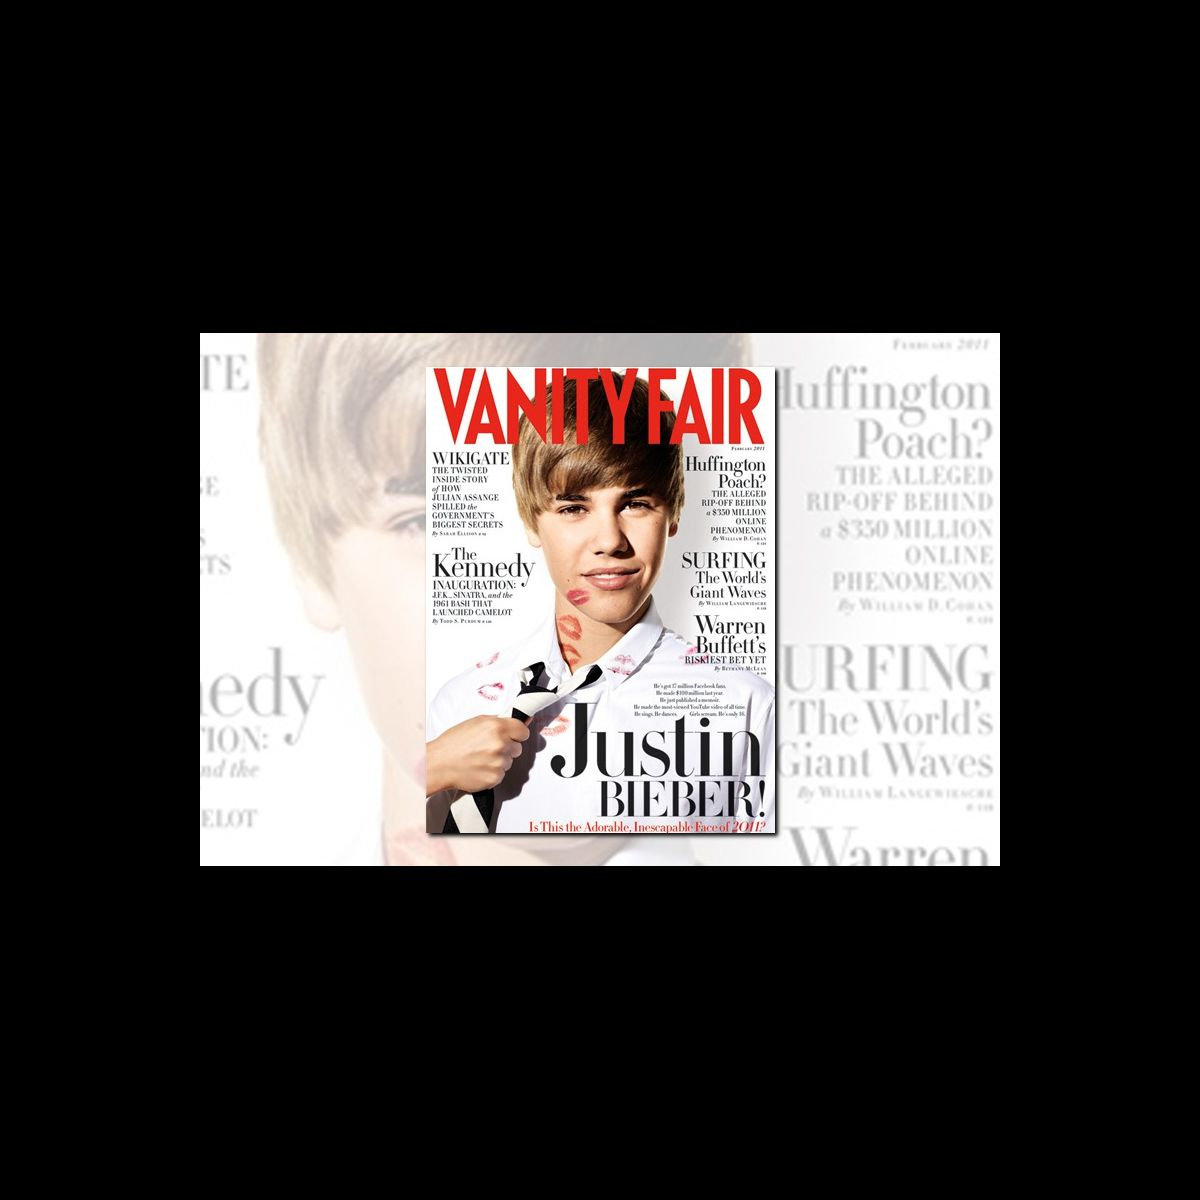 justin bieber fait plonger les ventes de vanity fair puremedias. Black Bedroom Furniture Sets. Home Design Ideas